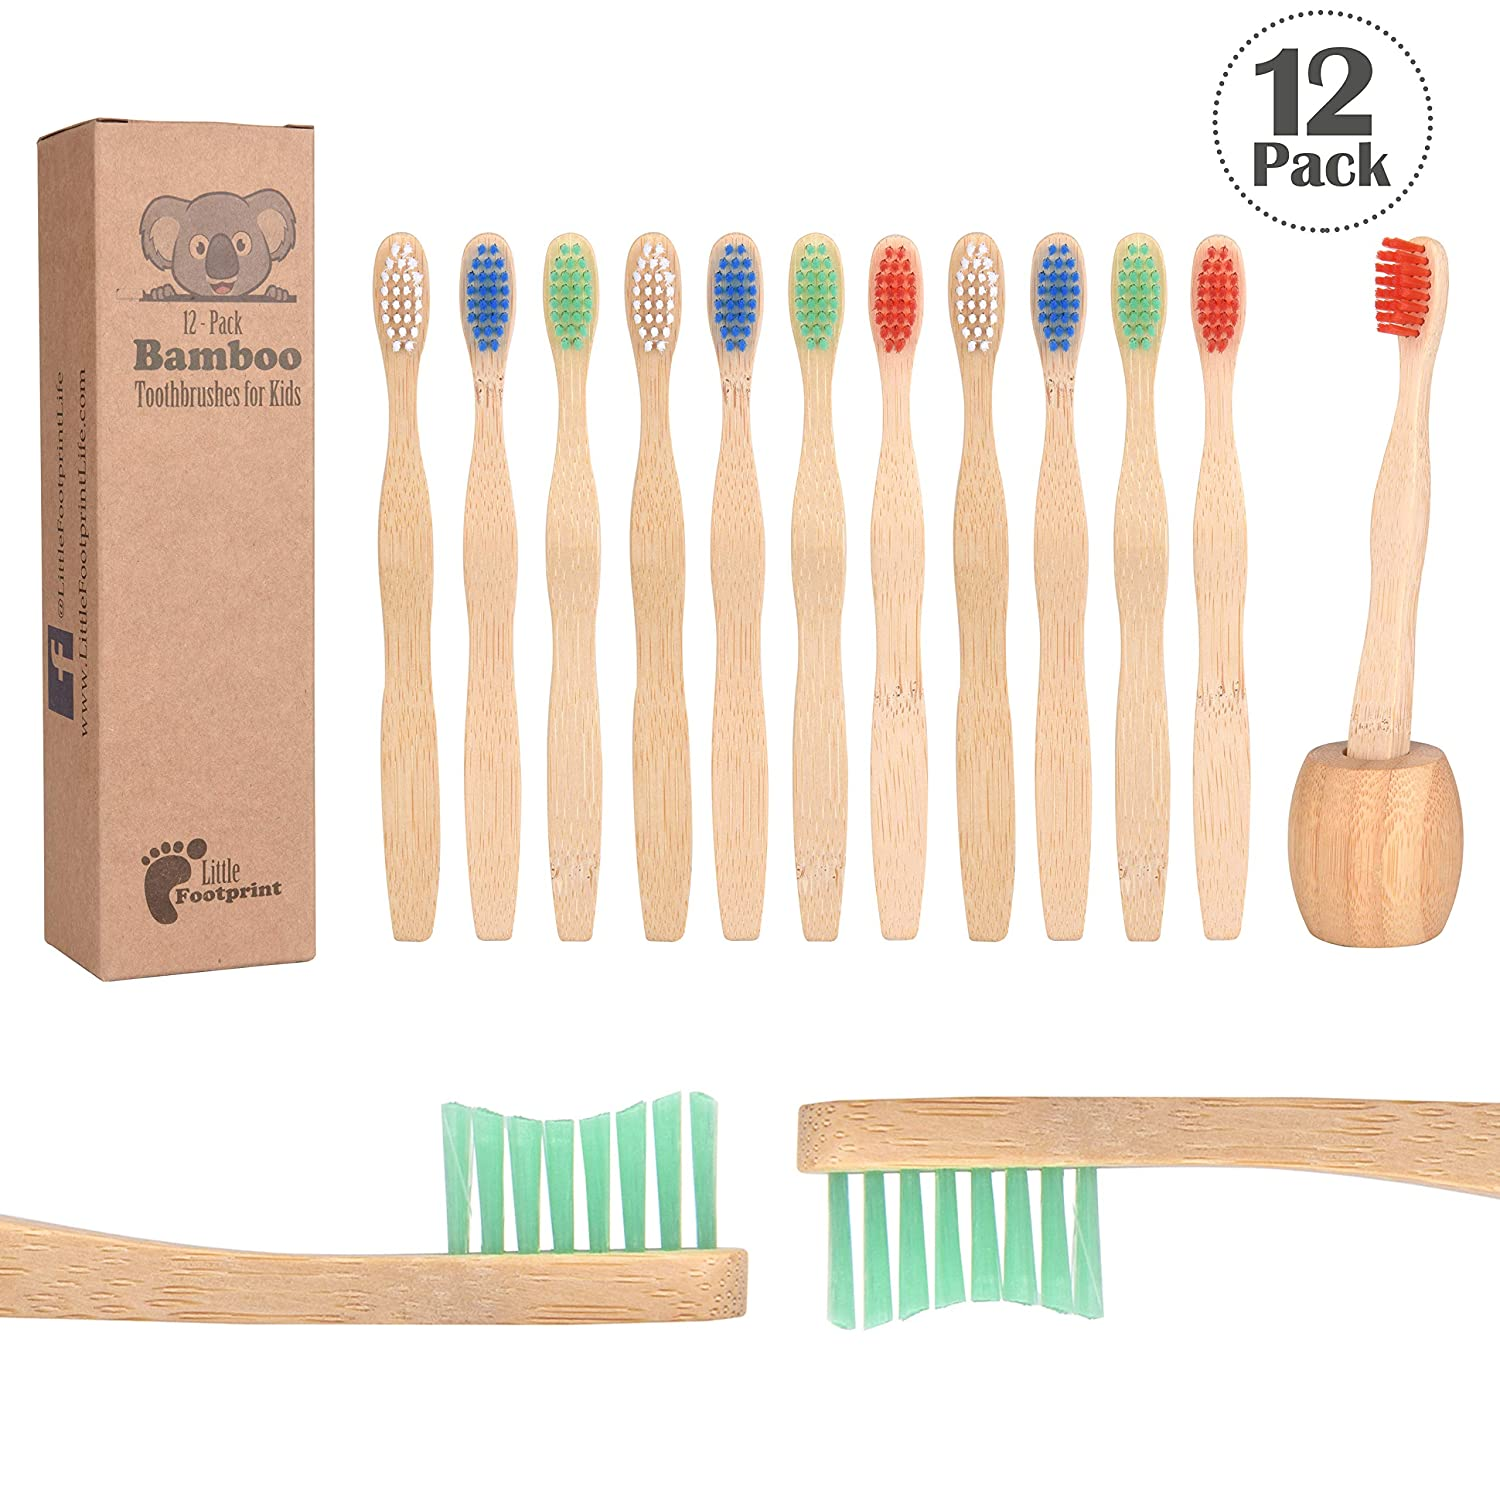 Bamboo Toothbrush for Kids | 12 Pack toothbrushes + Tooth Brush Holder | Biodegradable Compositable...